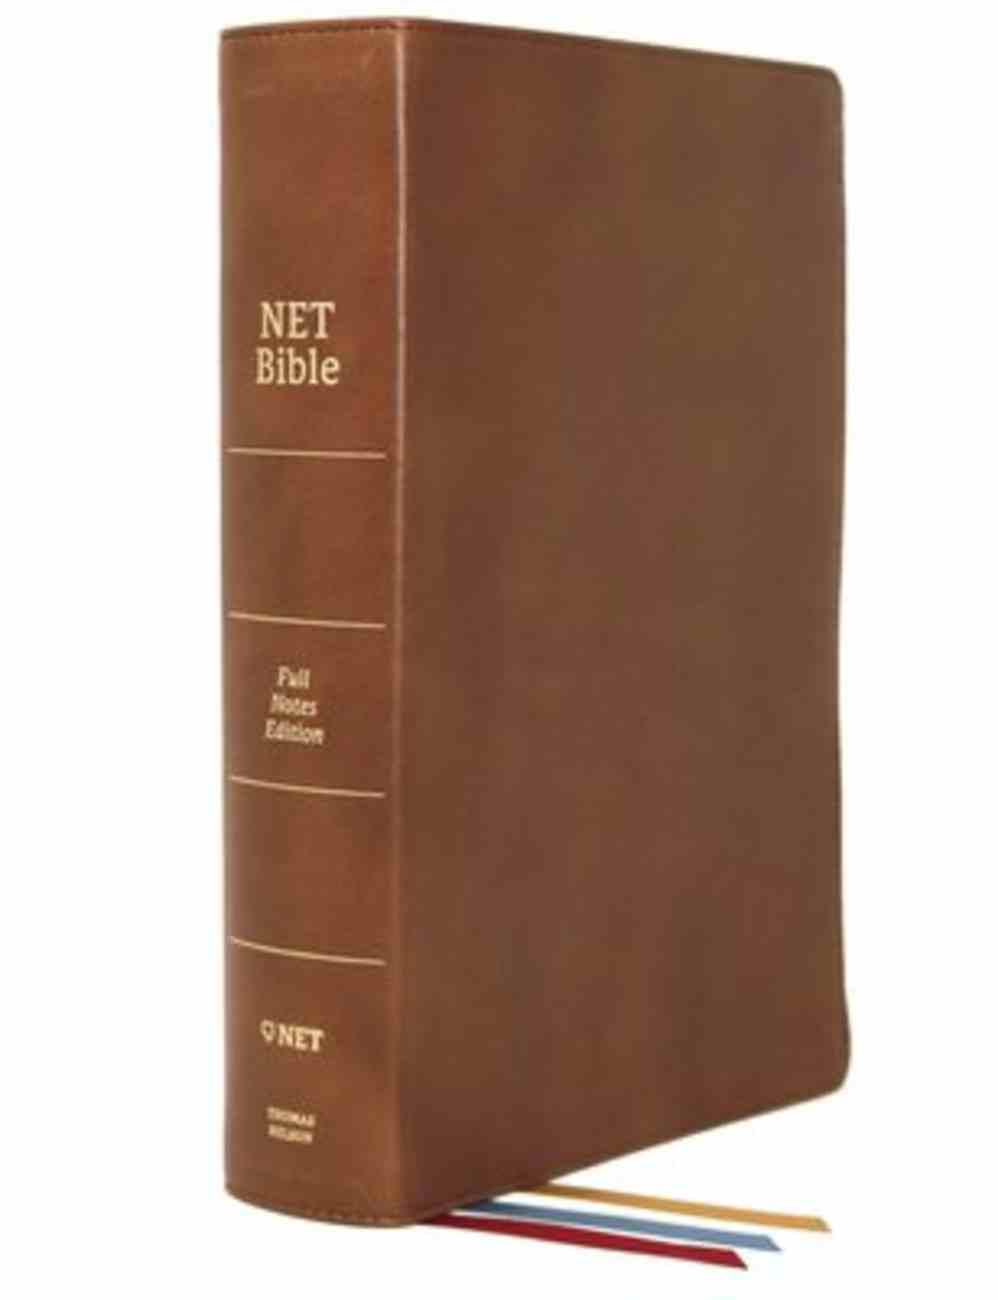 NET Bible Full-Notes Edition Brown Genuine Leather